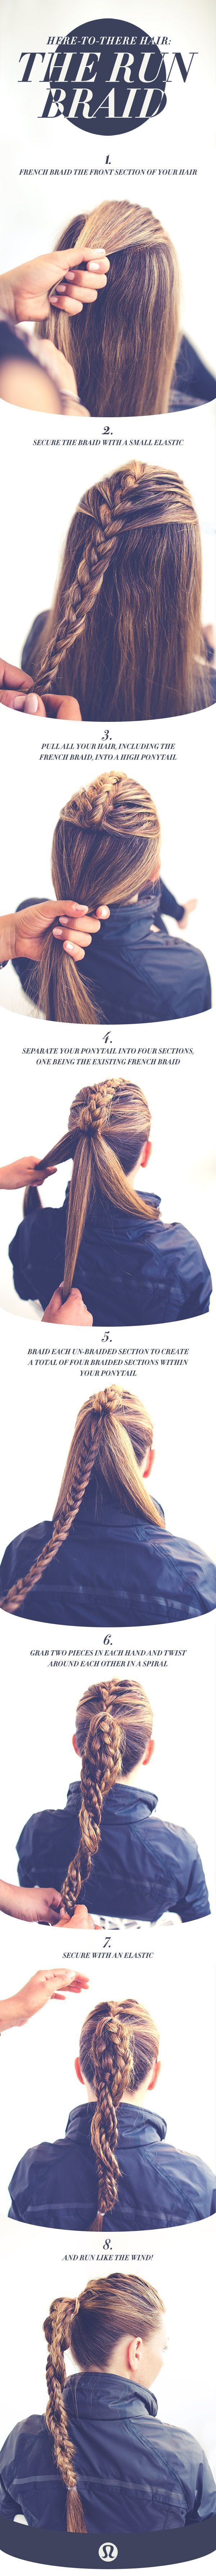 The run braid hairstyle pinterest bottle hair style and makeup